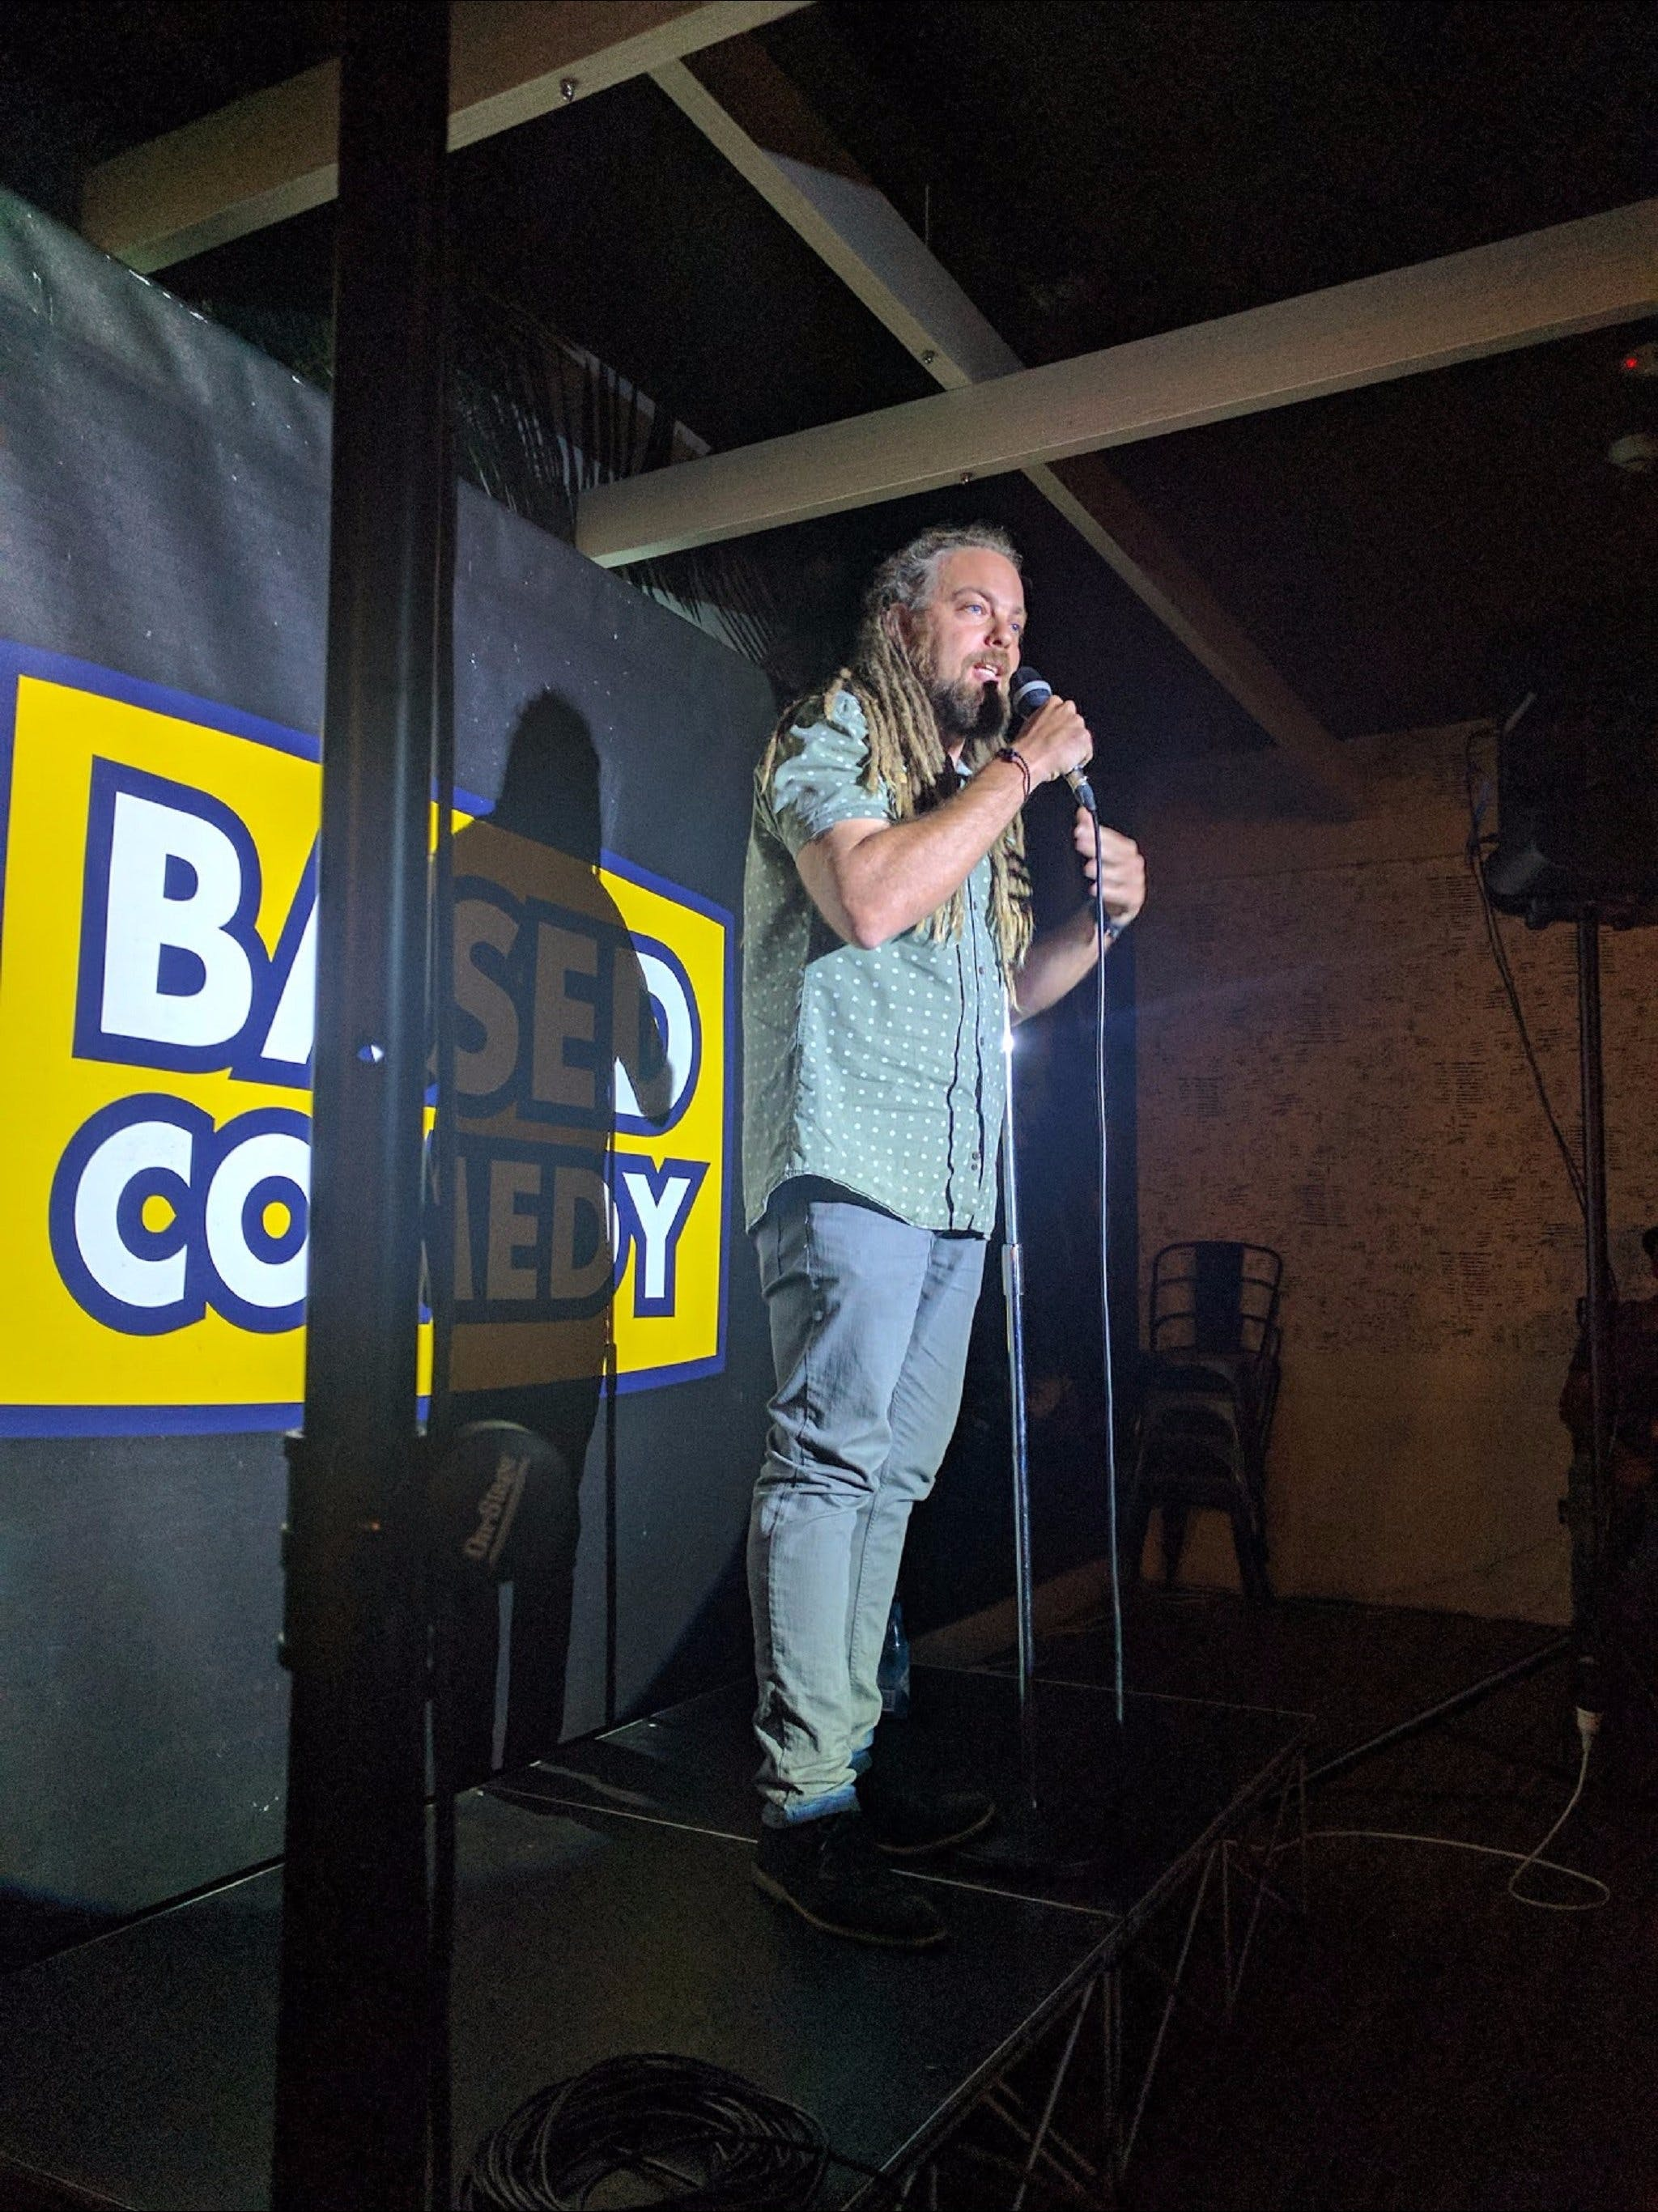 Based Comedy at The Palm Beach Hotel - eAccommodation